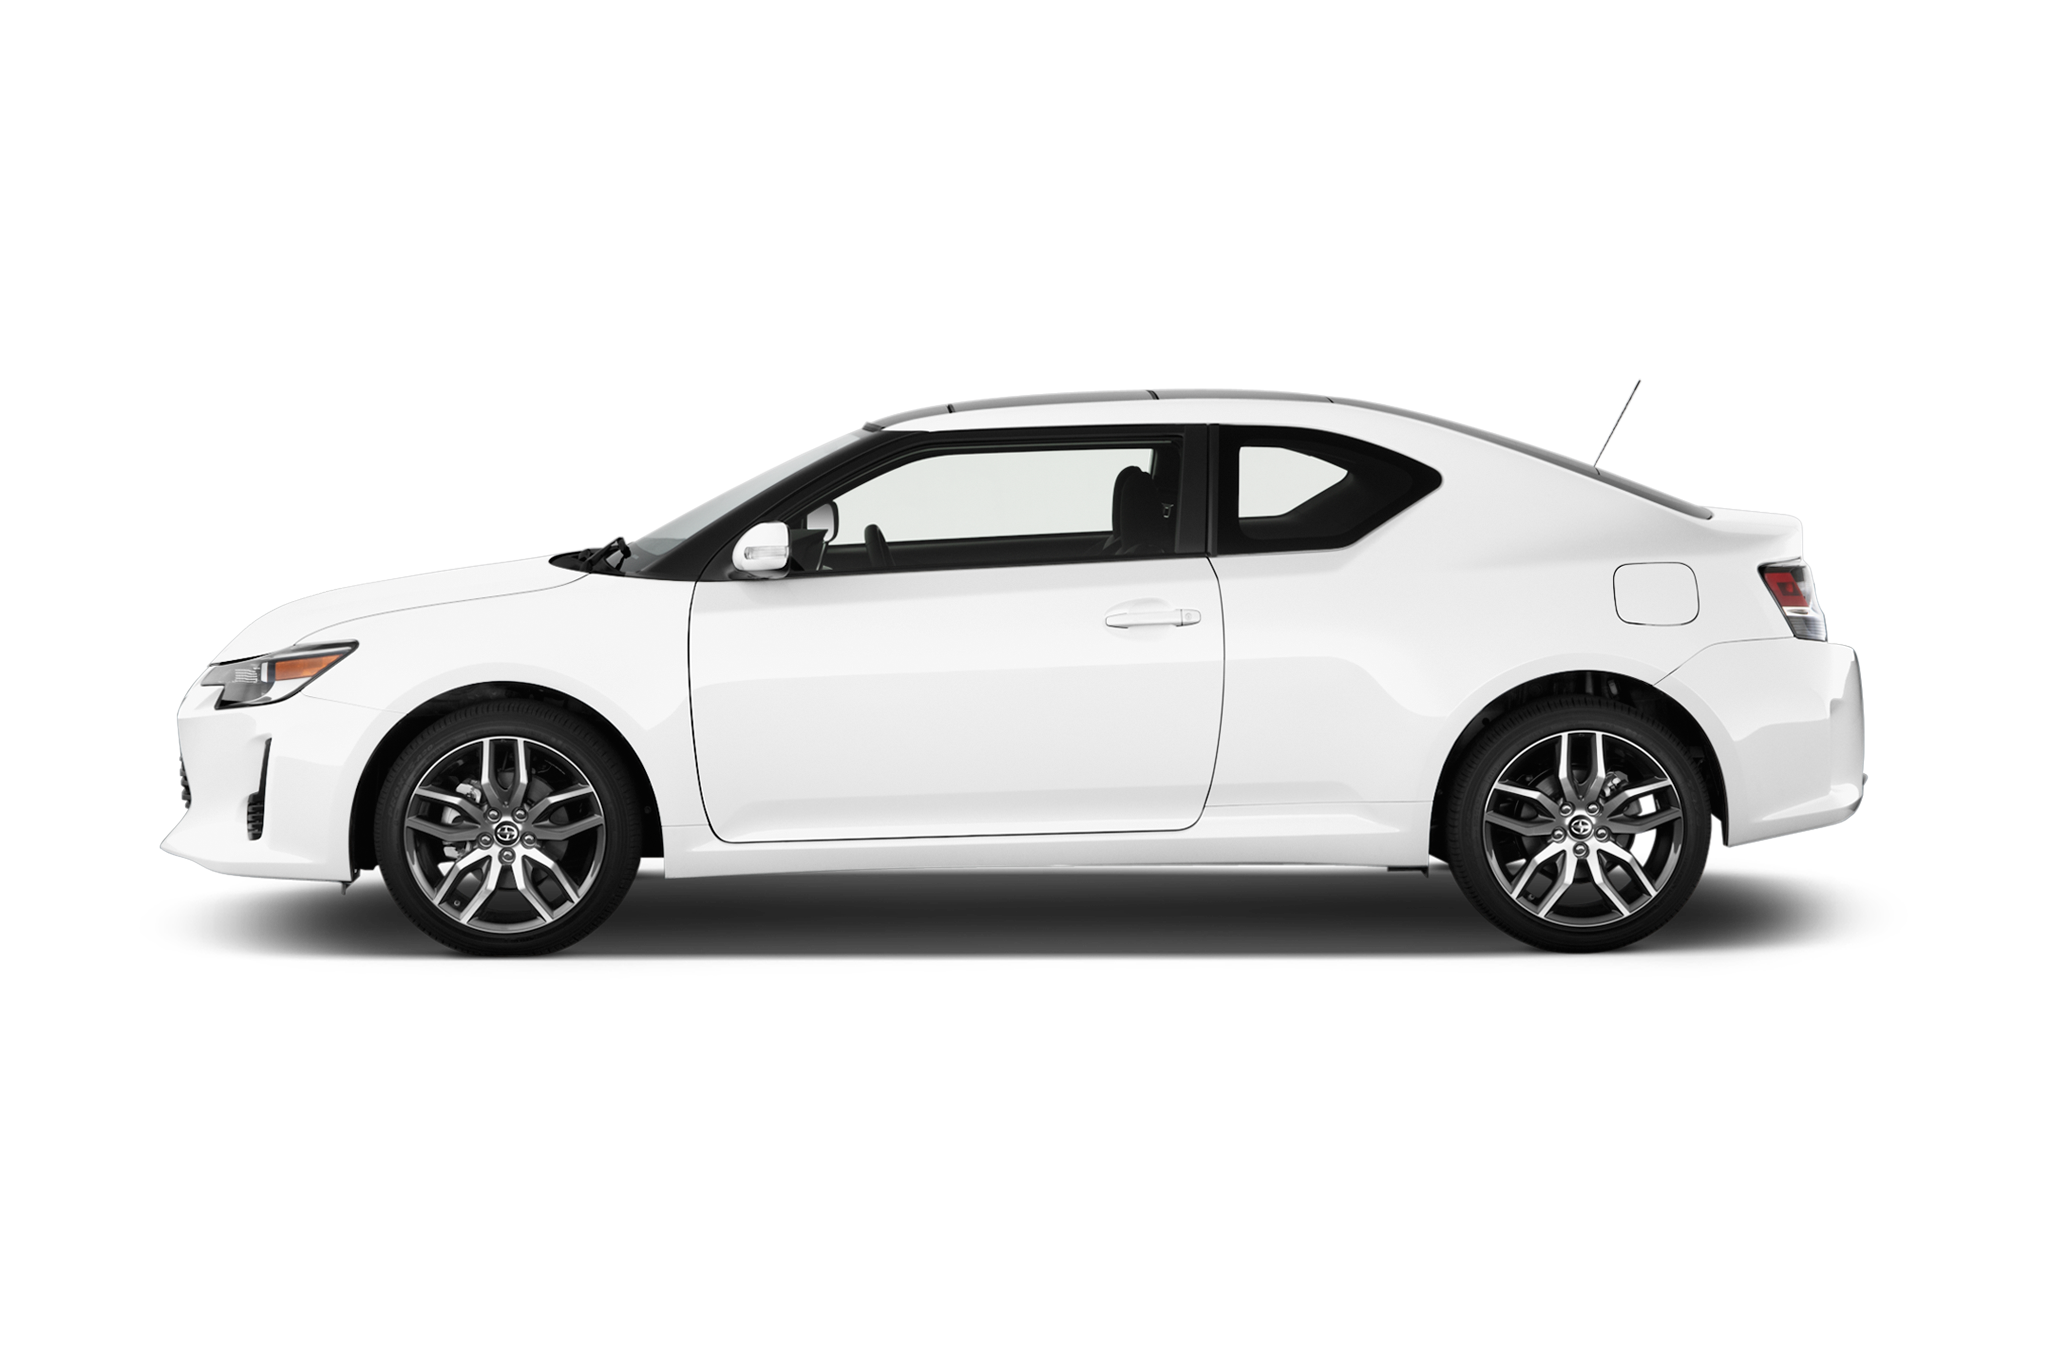 Scion Tc 0 60 >> 2015 Scion tC Release Series 9.0 Announced